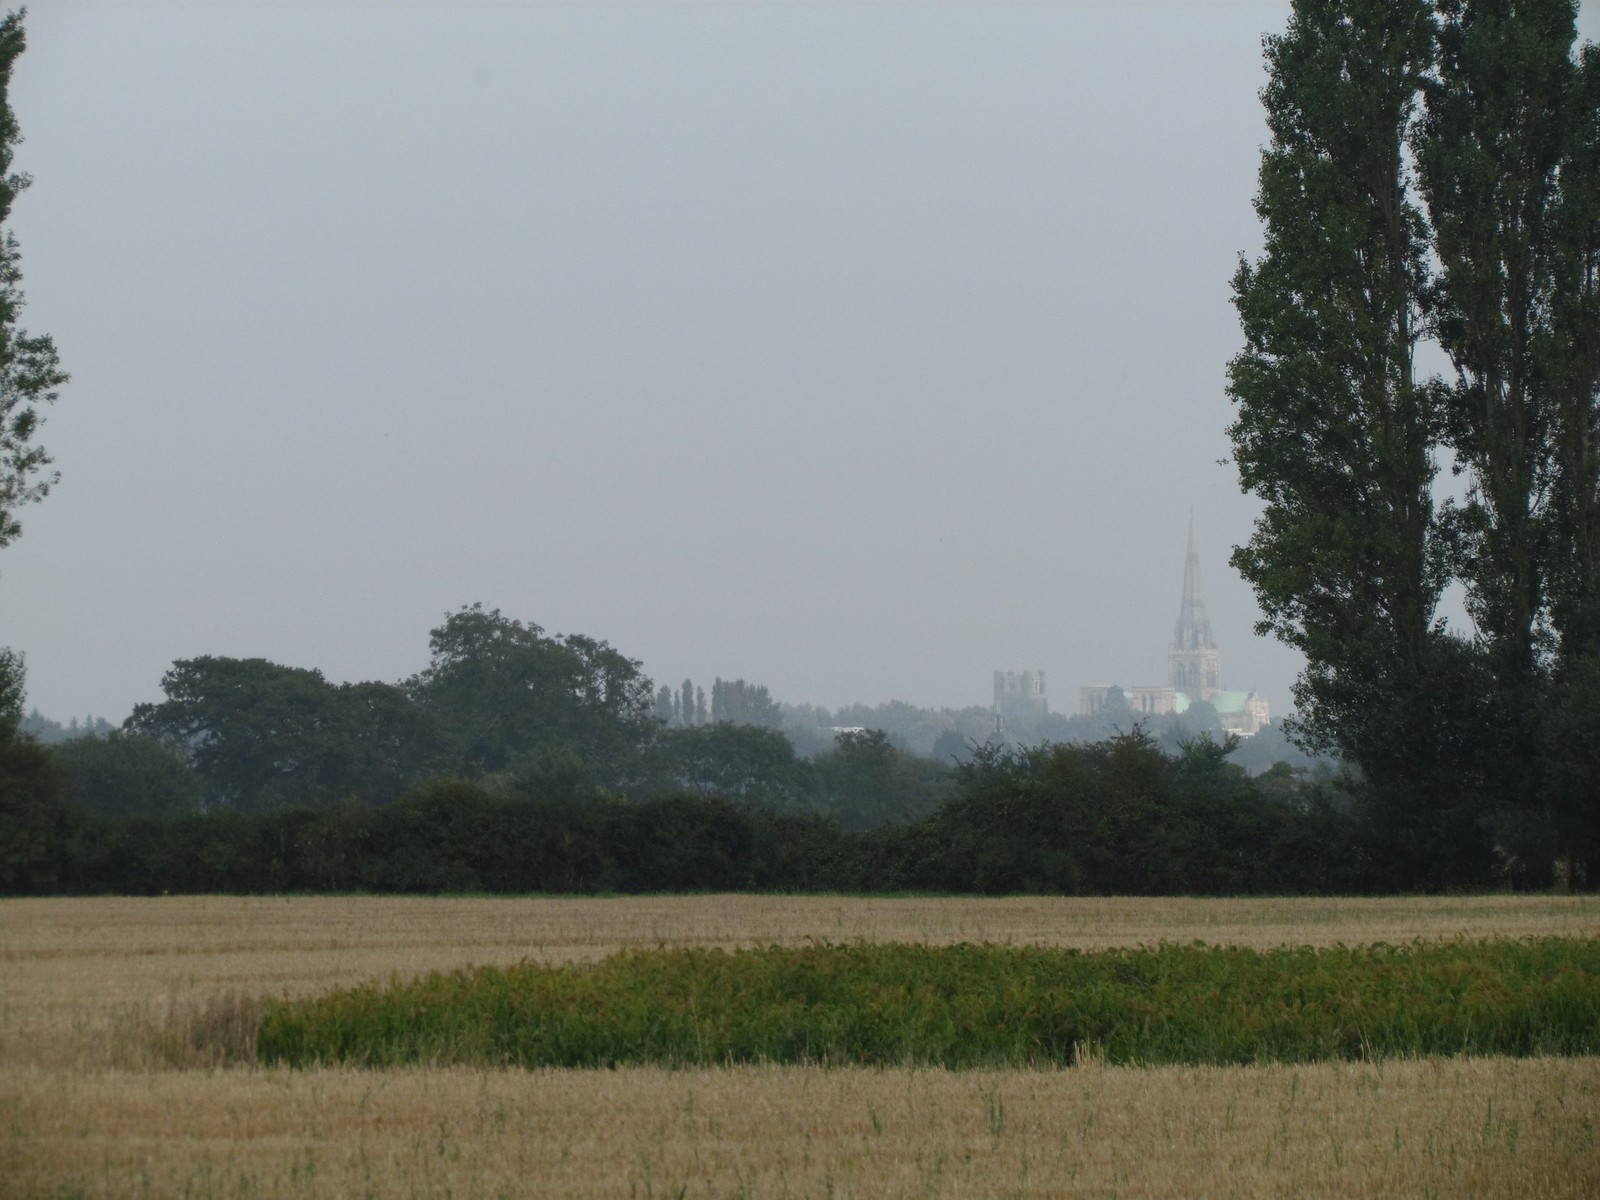 photo from walk Chichester in the distance